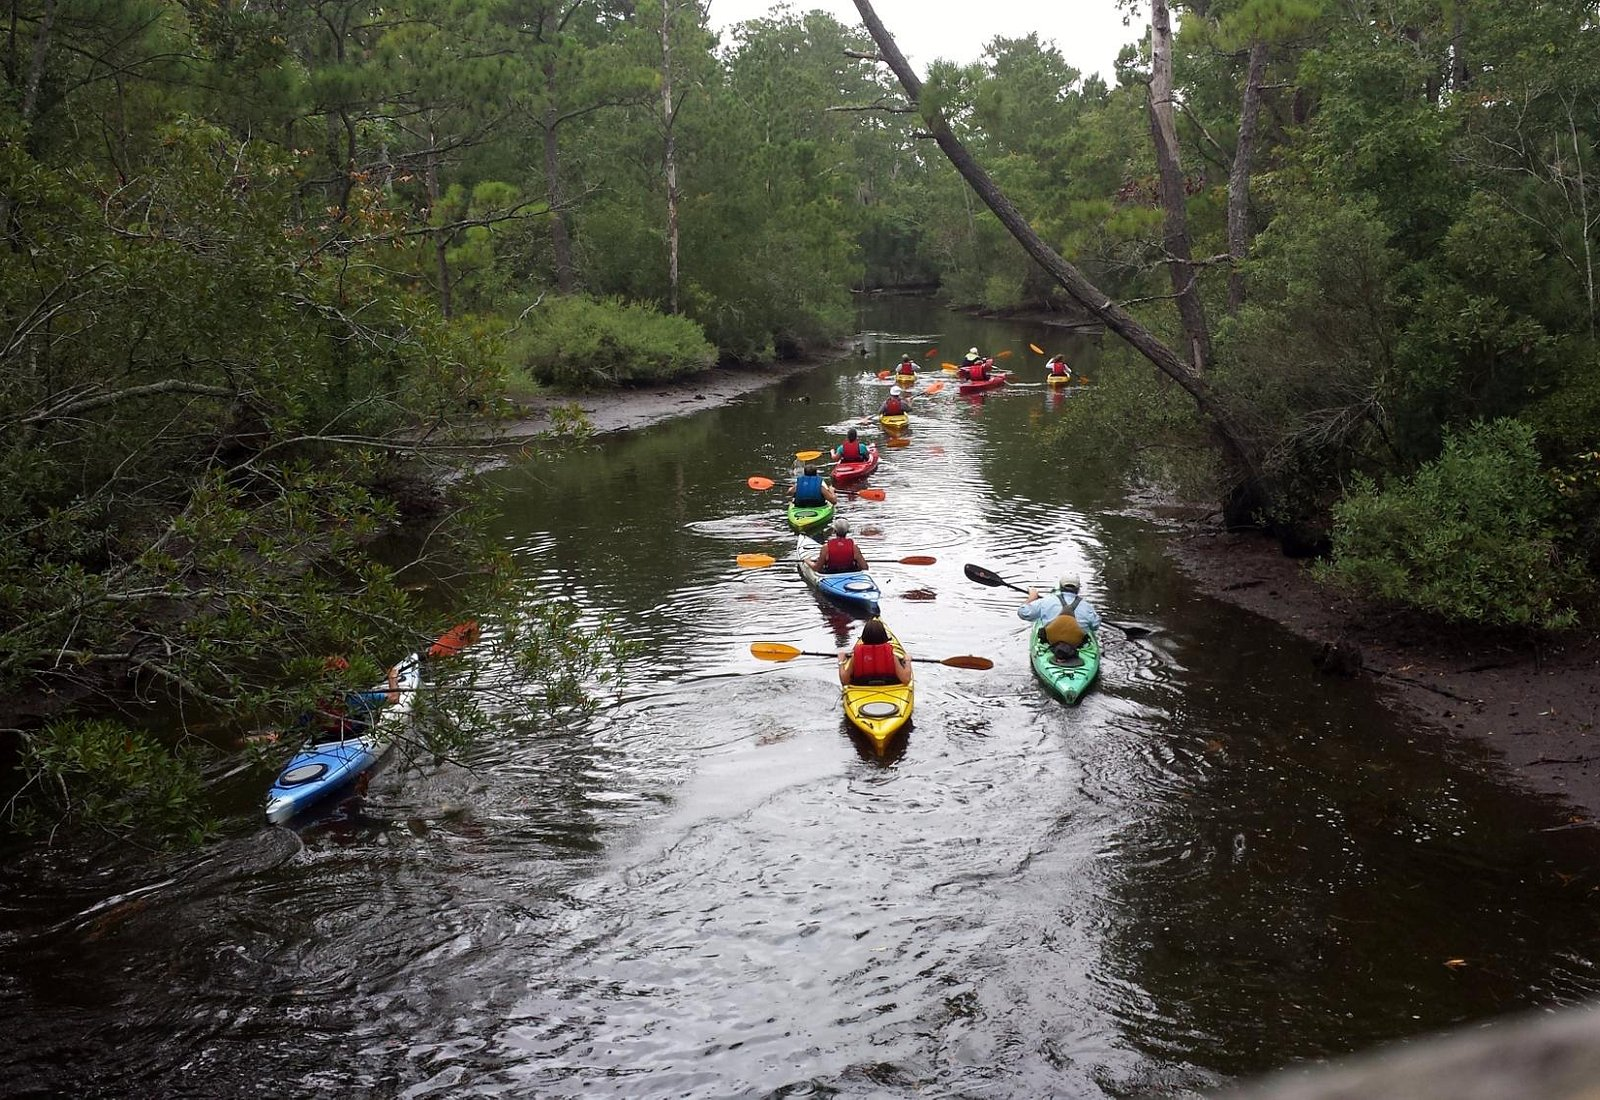 Kayaking group as seen from the covered bridge